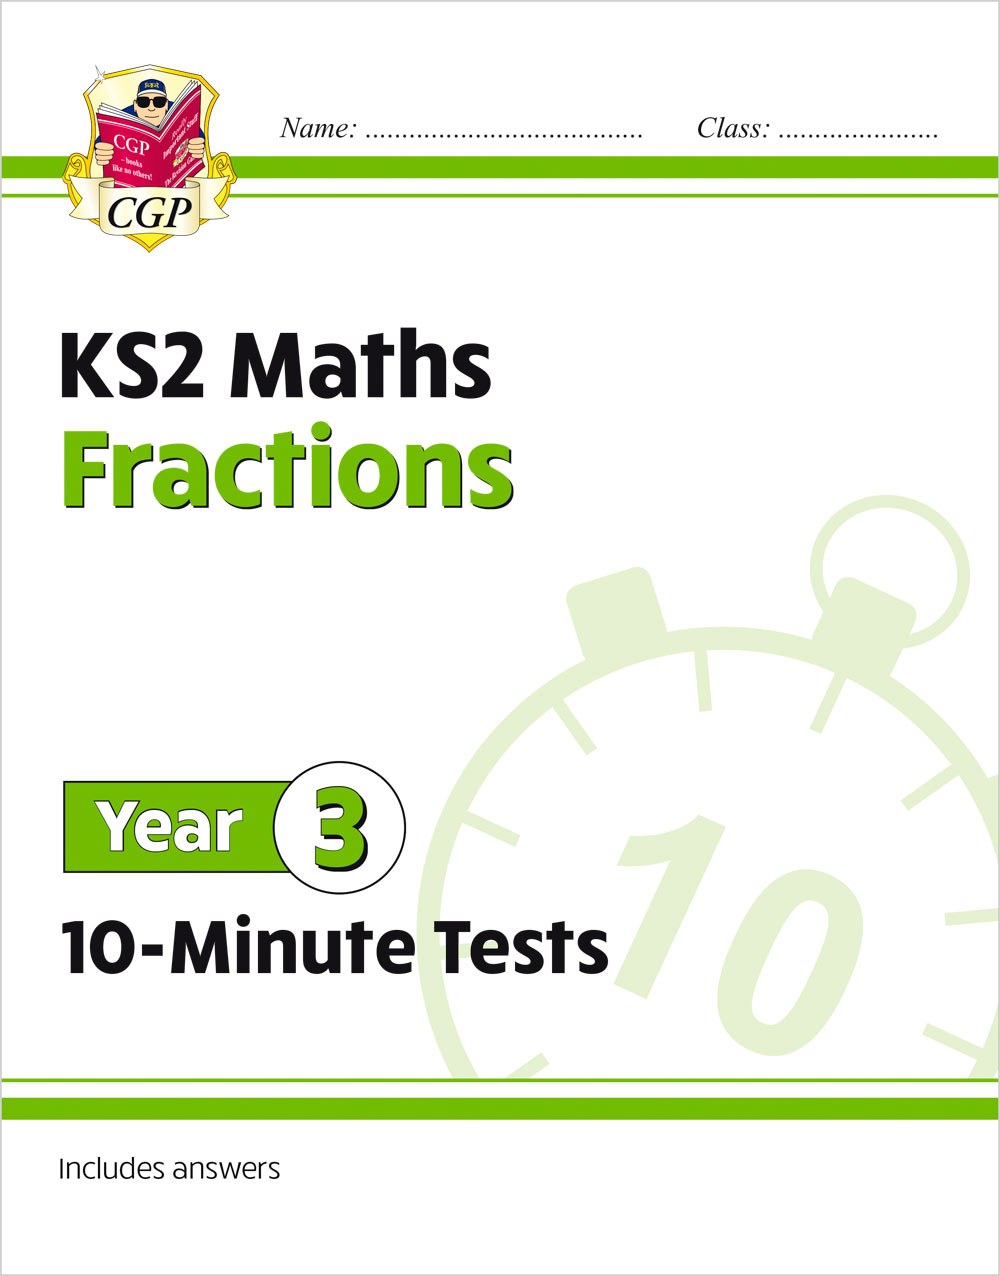 M3FRXP21 - New KS2 Maths 10-Minute Tests: Fractions - Year 3